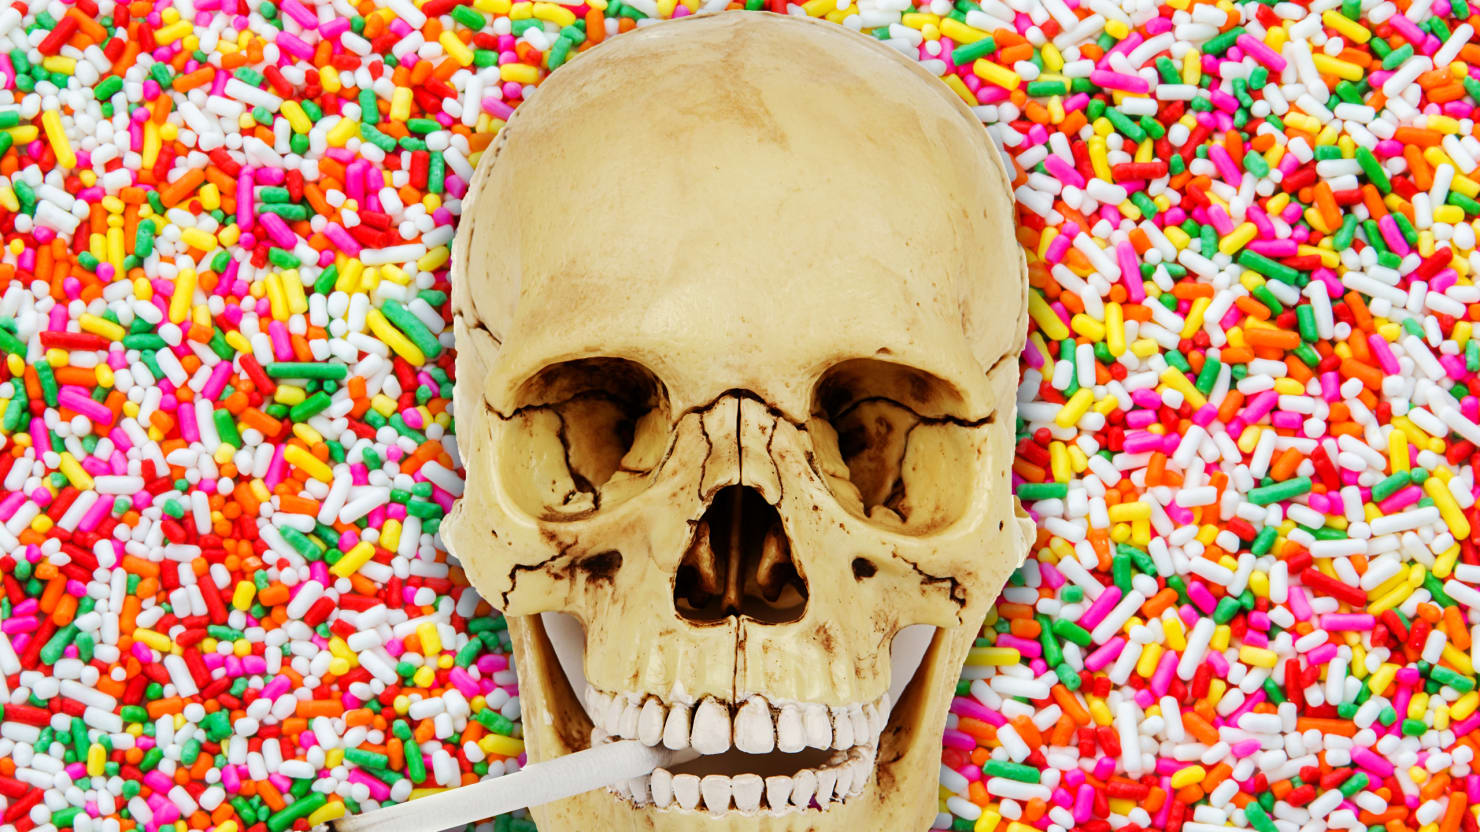 Is Nicotine the Cure for Sugar Addiction?